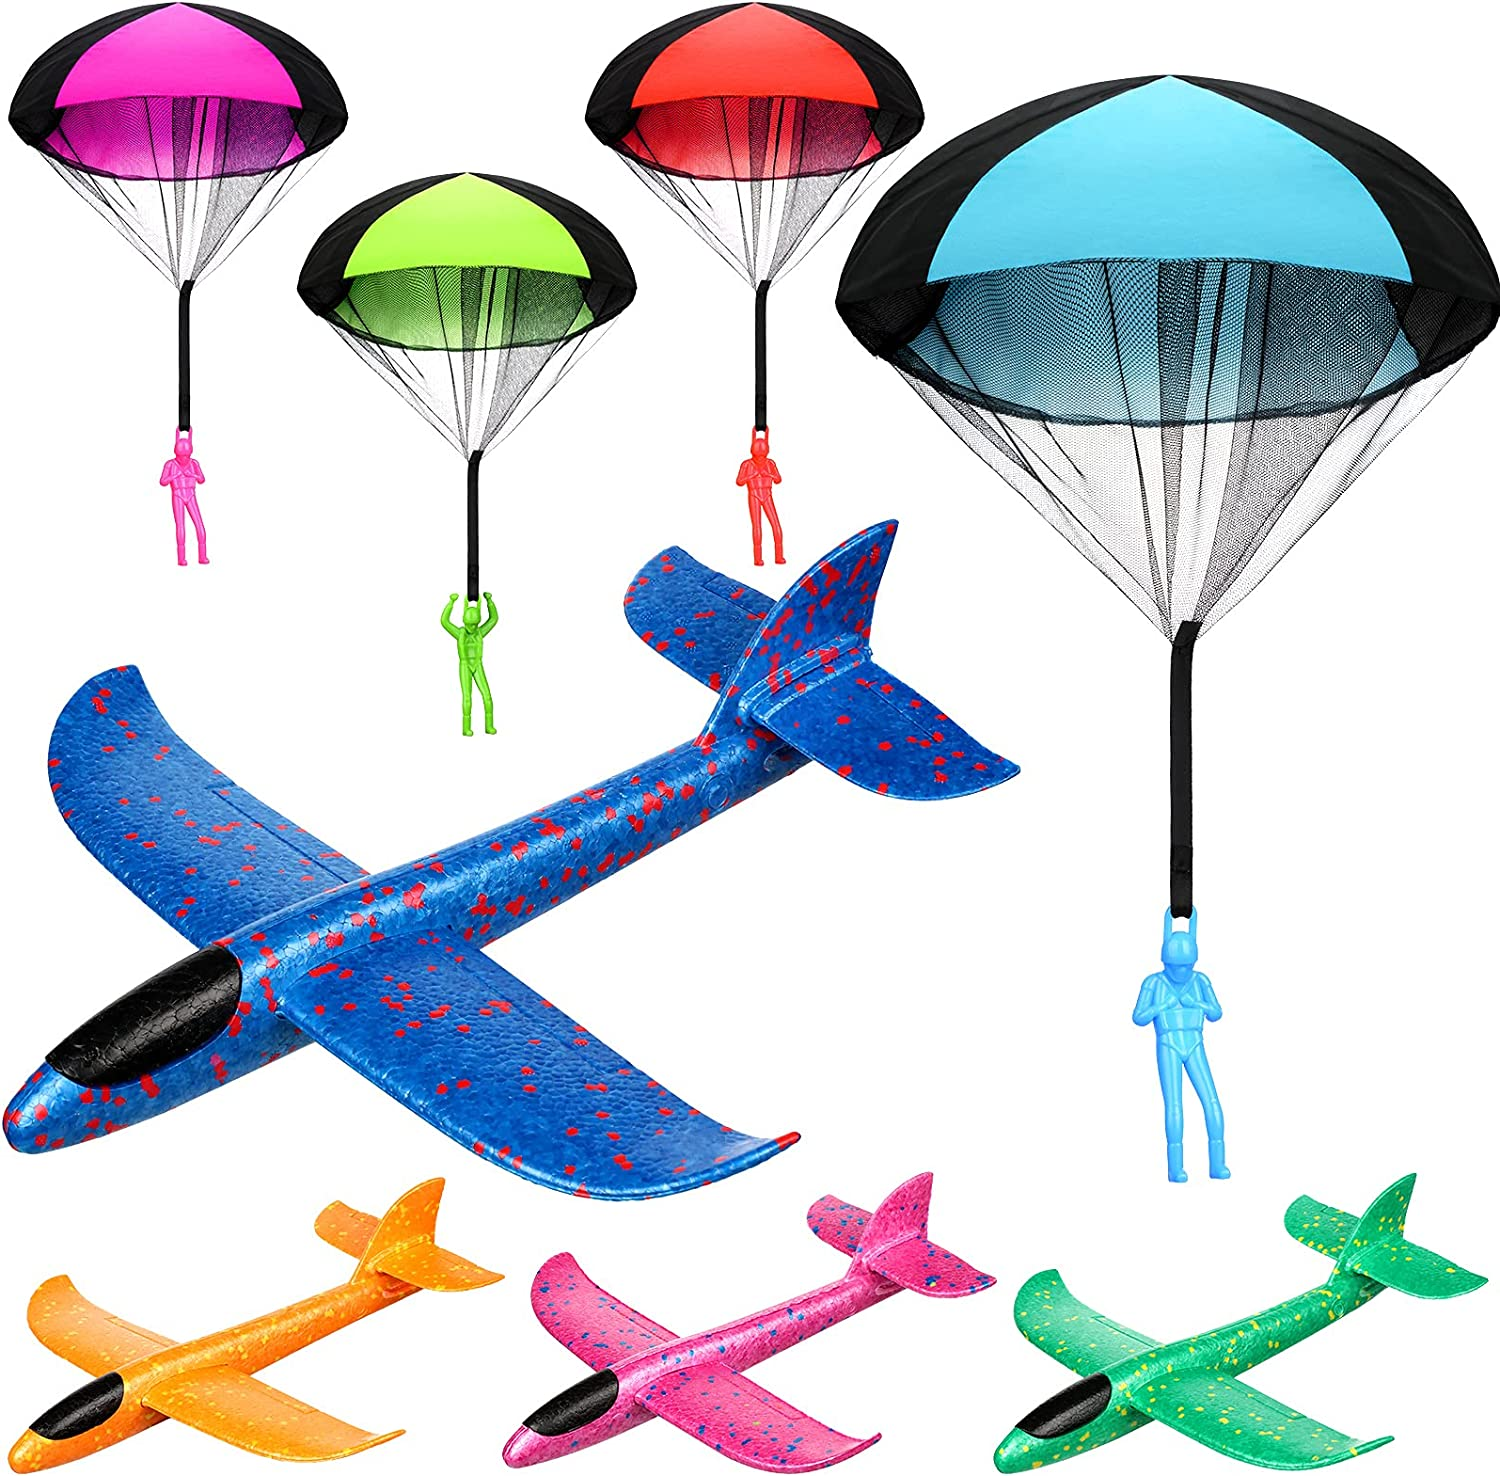 8 Pieces security Throwing Toy 13.8 Inch Industry No. 1 Airplanes and Par Foam 17.7